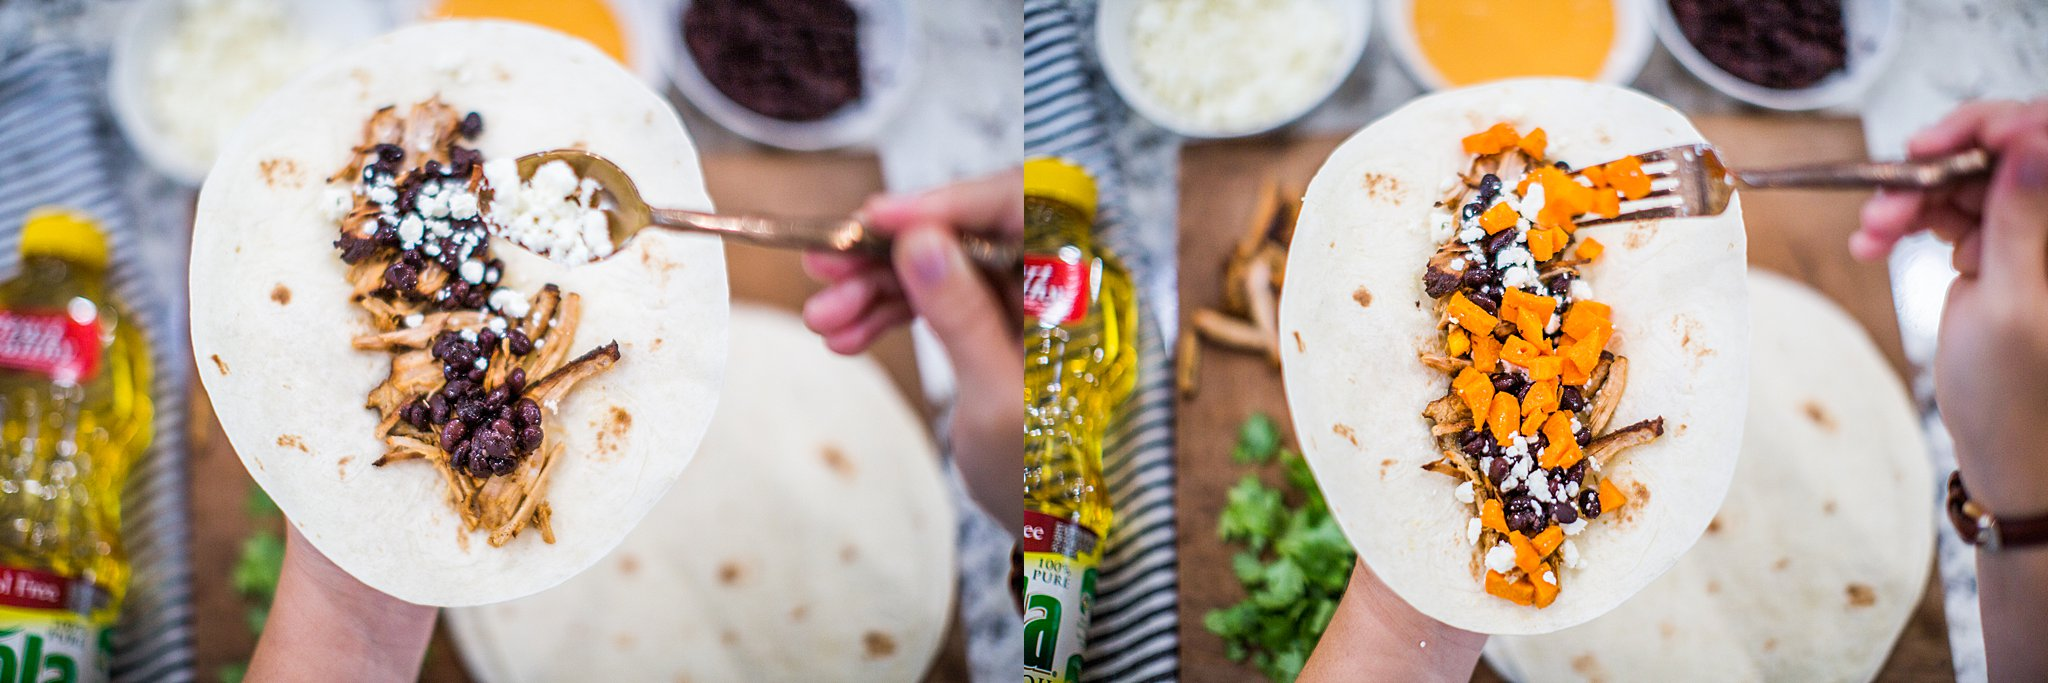 pork taco step by step recipe